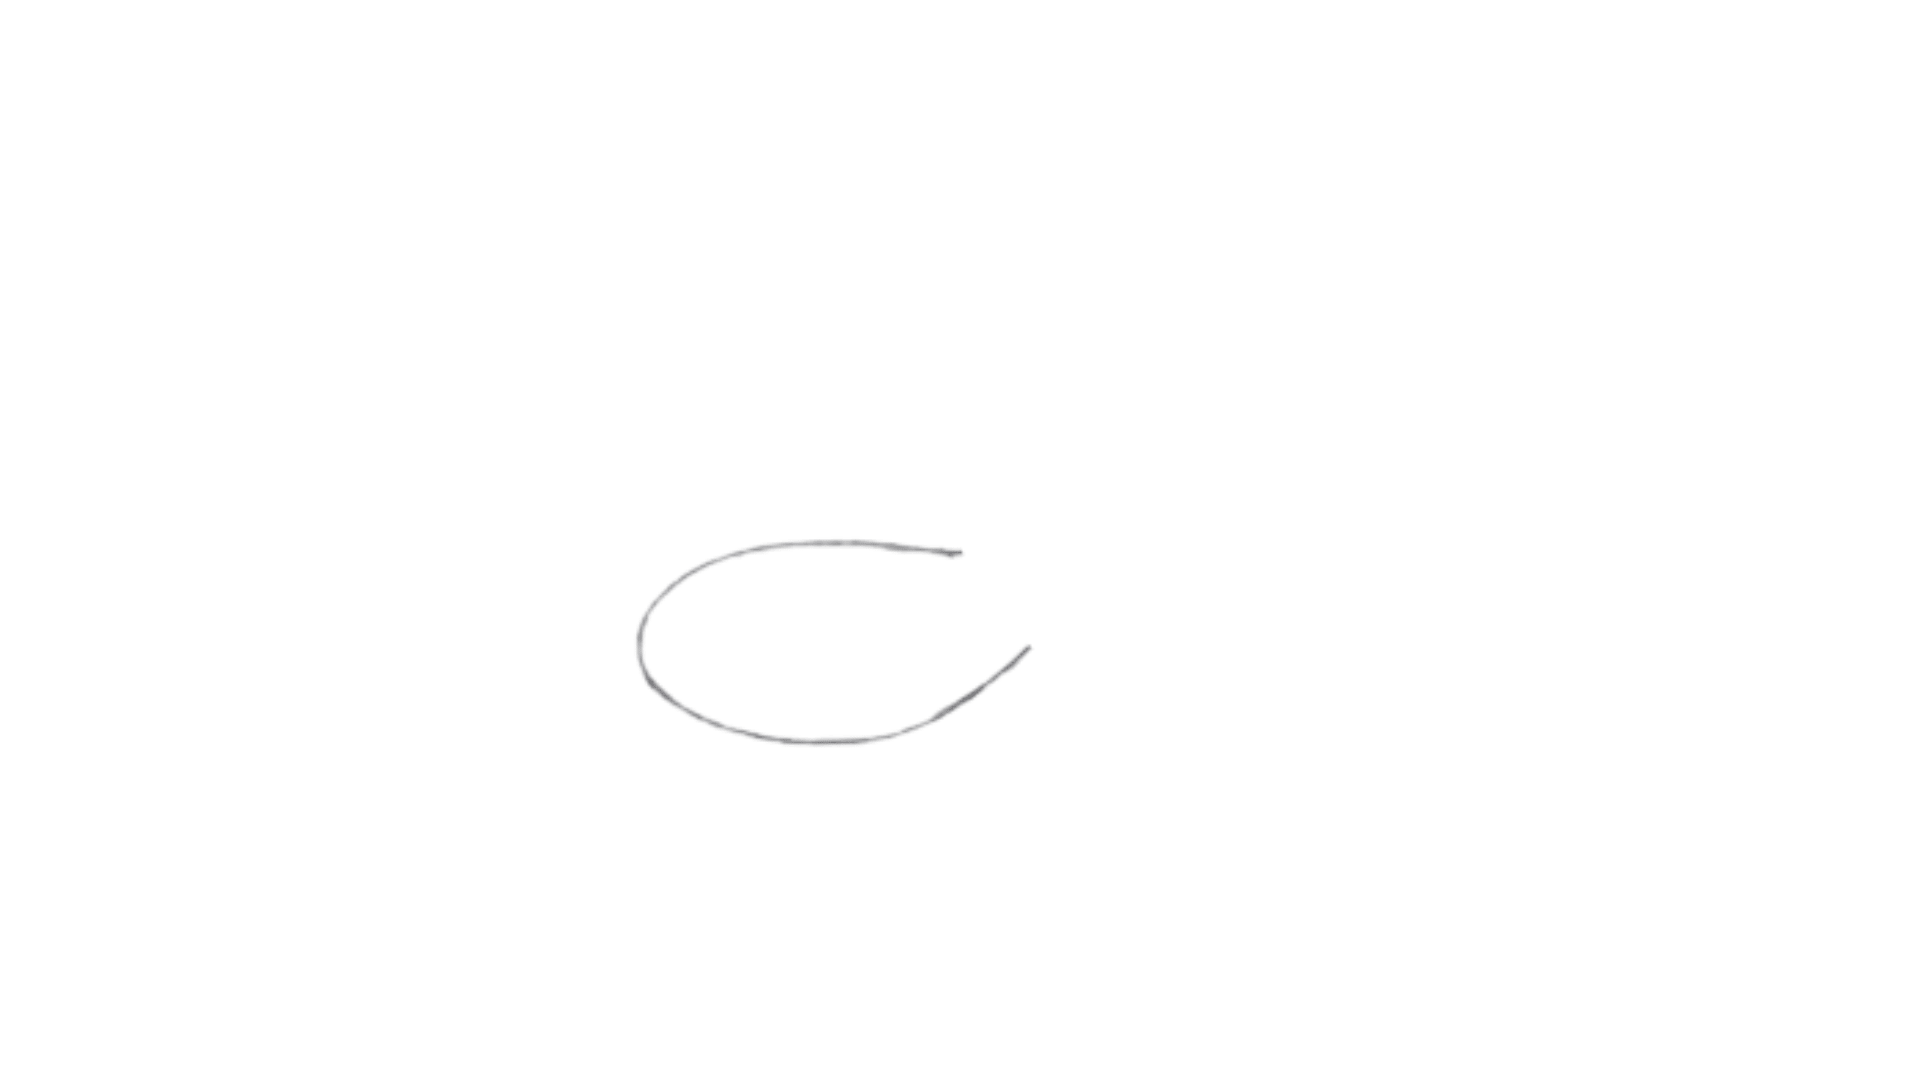 How To Draw Spoon Step 1